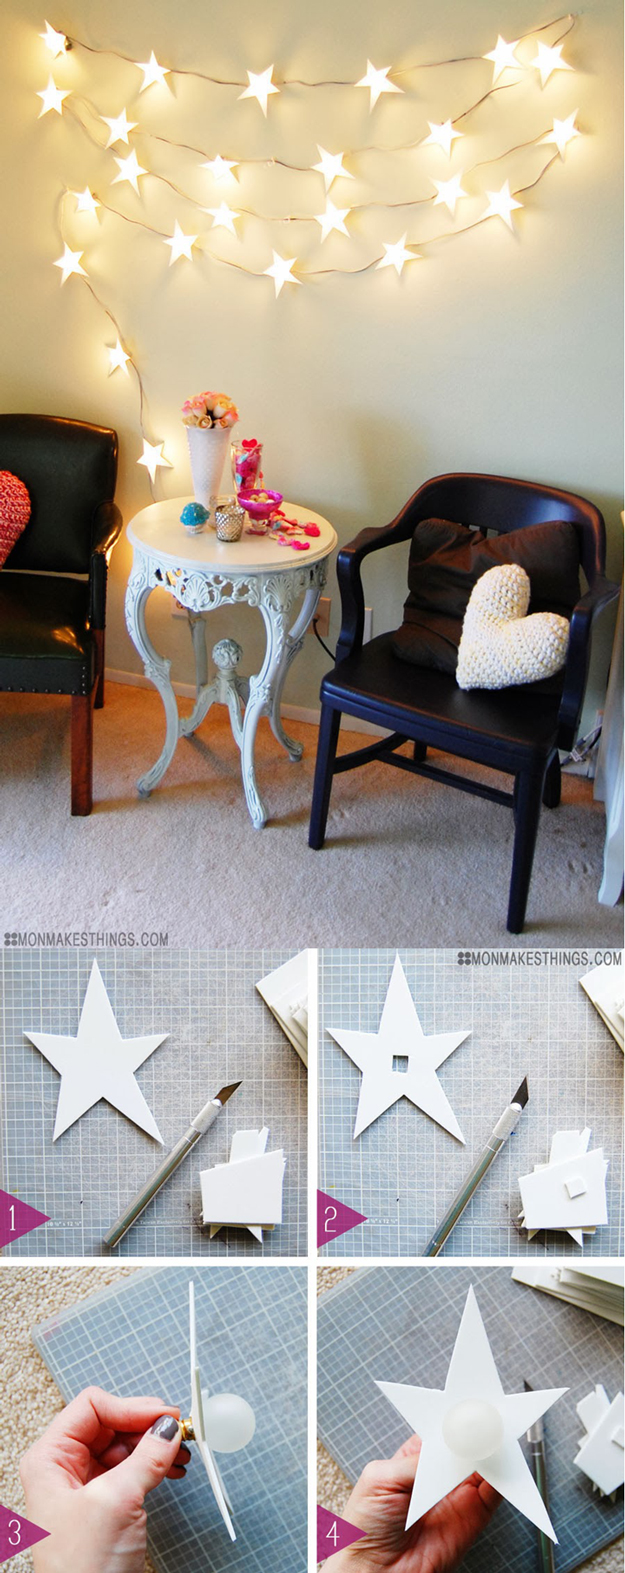 String Light DIY Ideas For Cool Home Decor | Star Garland Christmas Light  DIY Are Fun